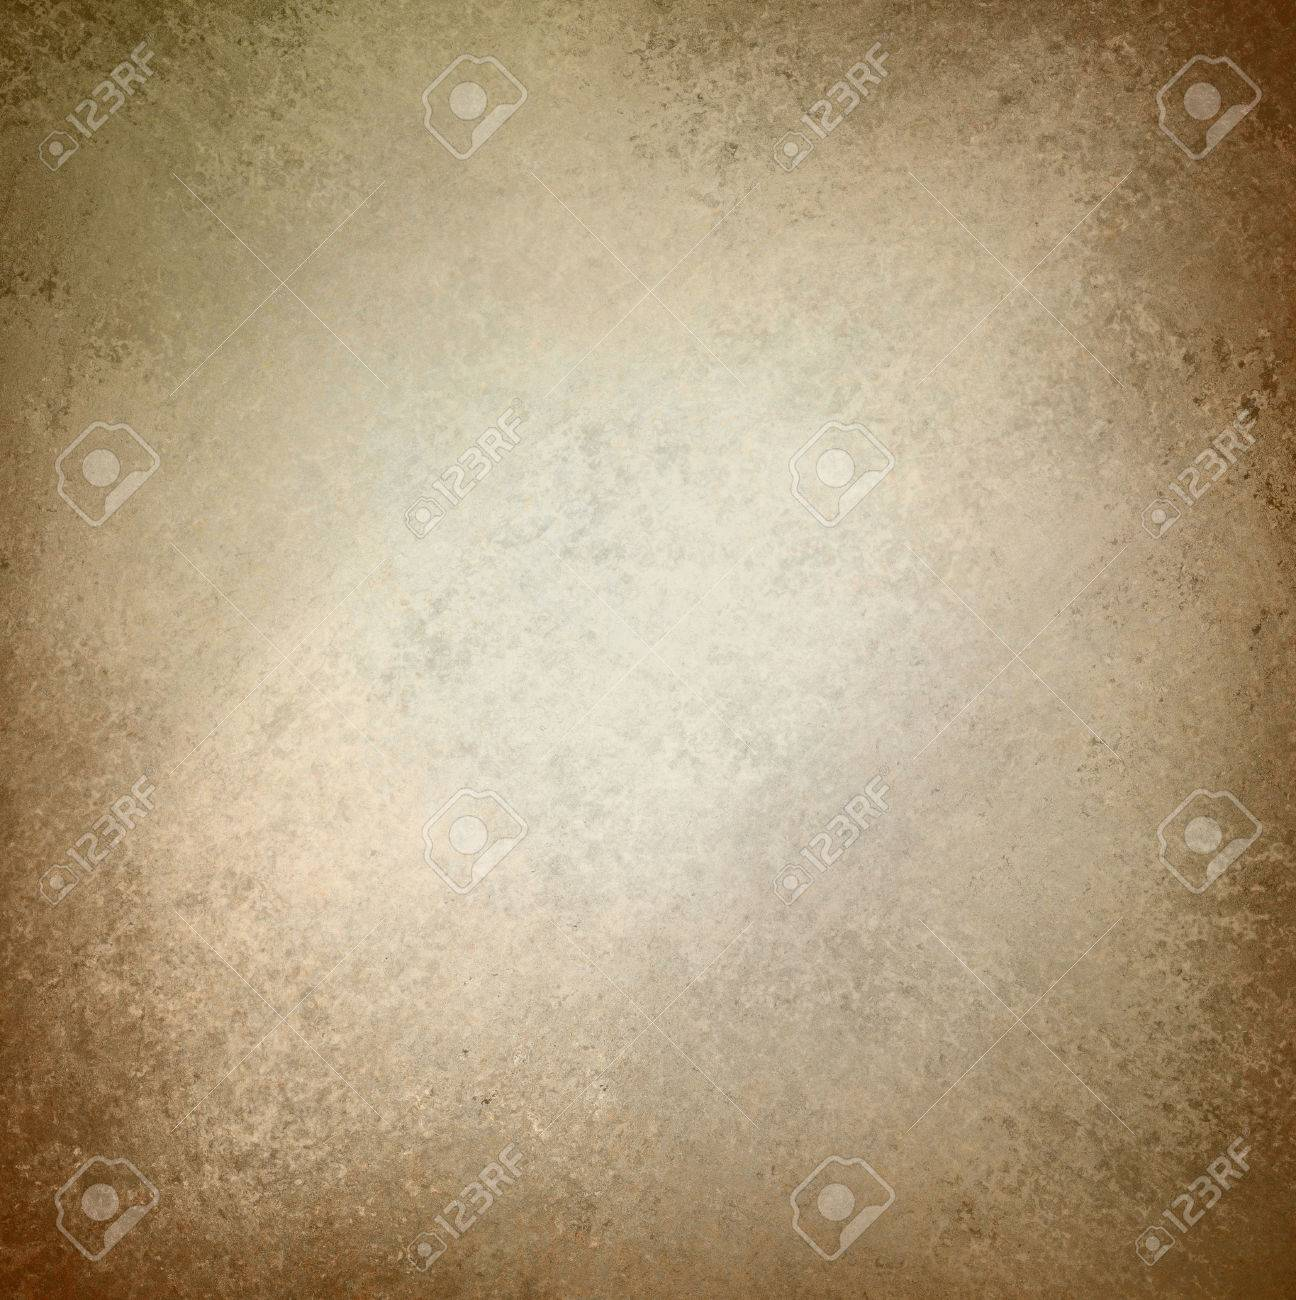 Abstract Brown Background Beige Tan Color Vintage Grunge Texture Paper Bag